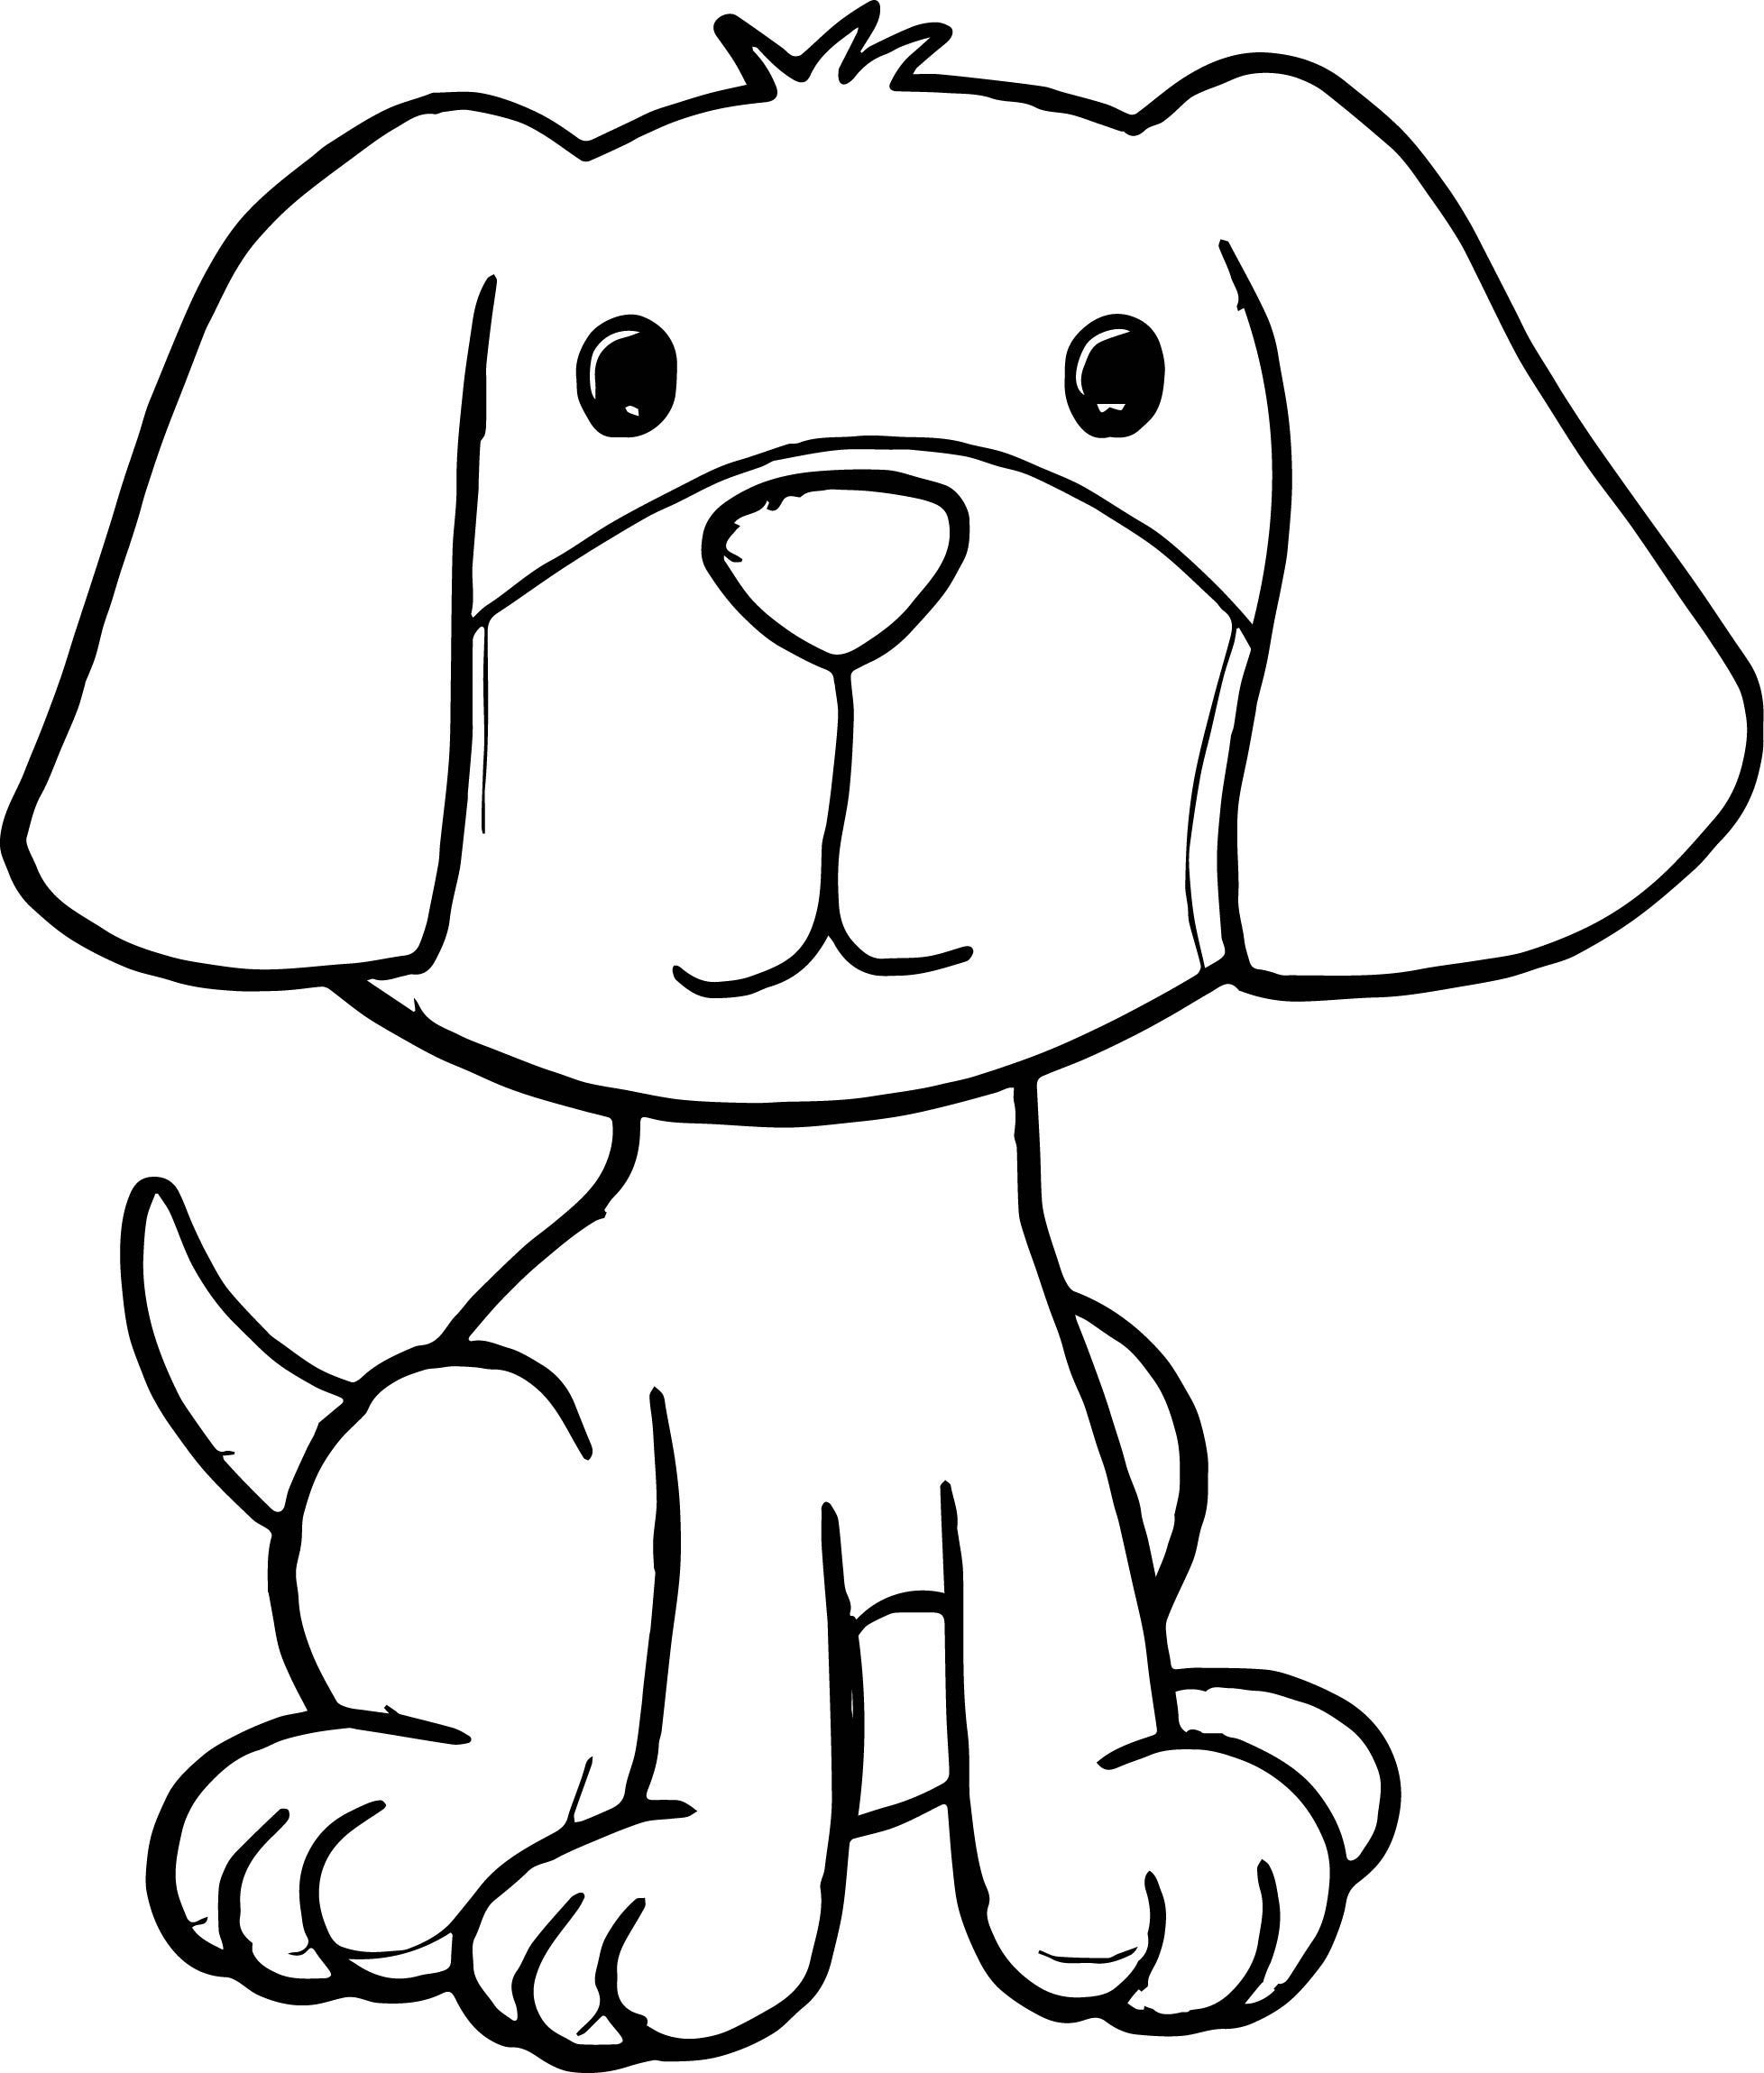 Cool Puppy Pictures Of Cute Cartoon Puppies Dog Puppy